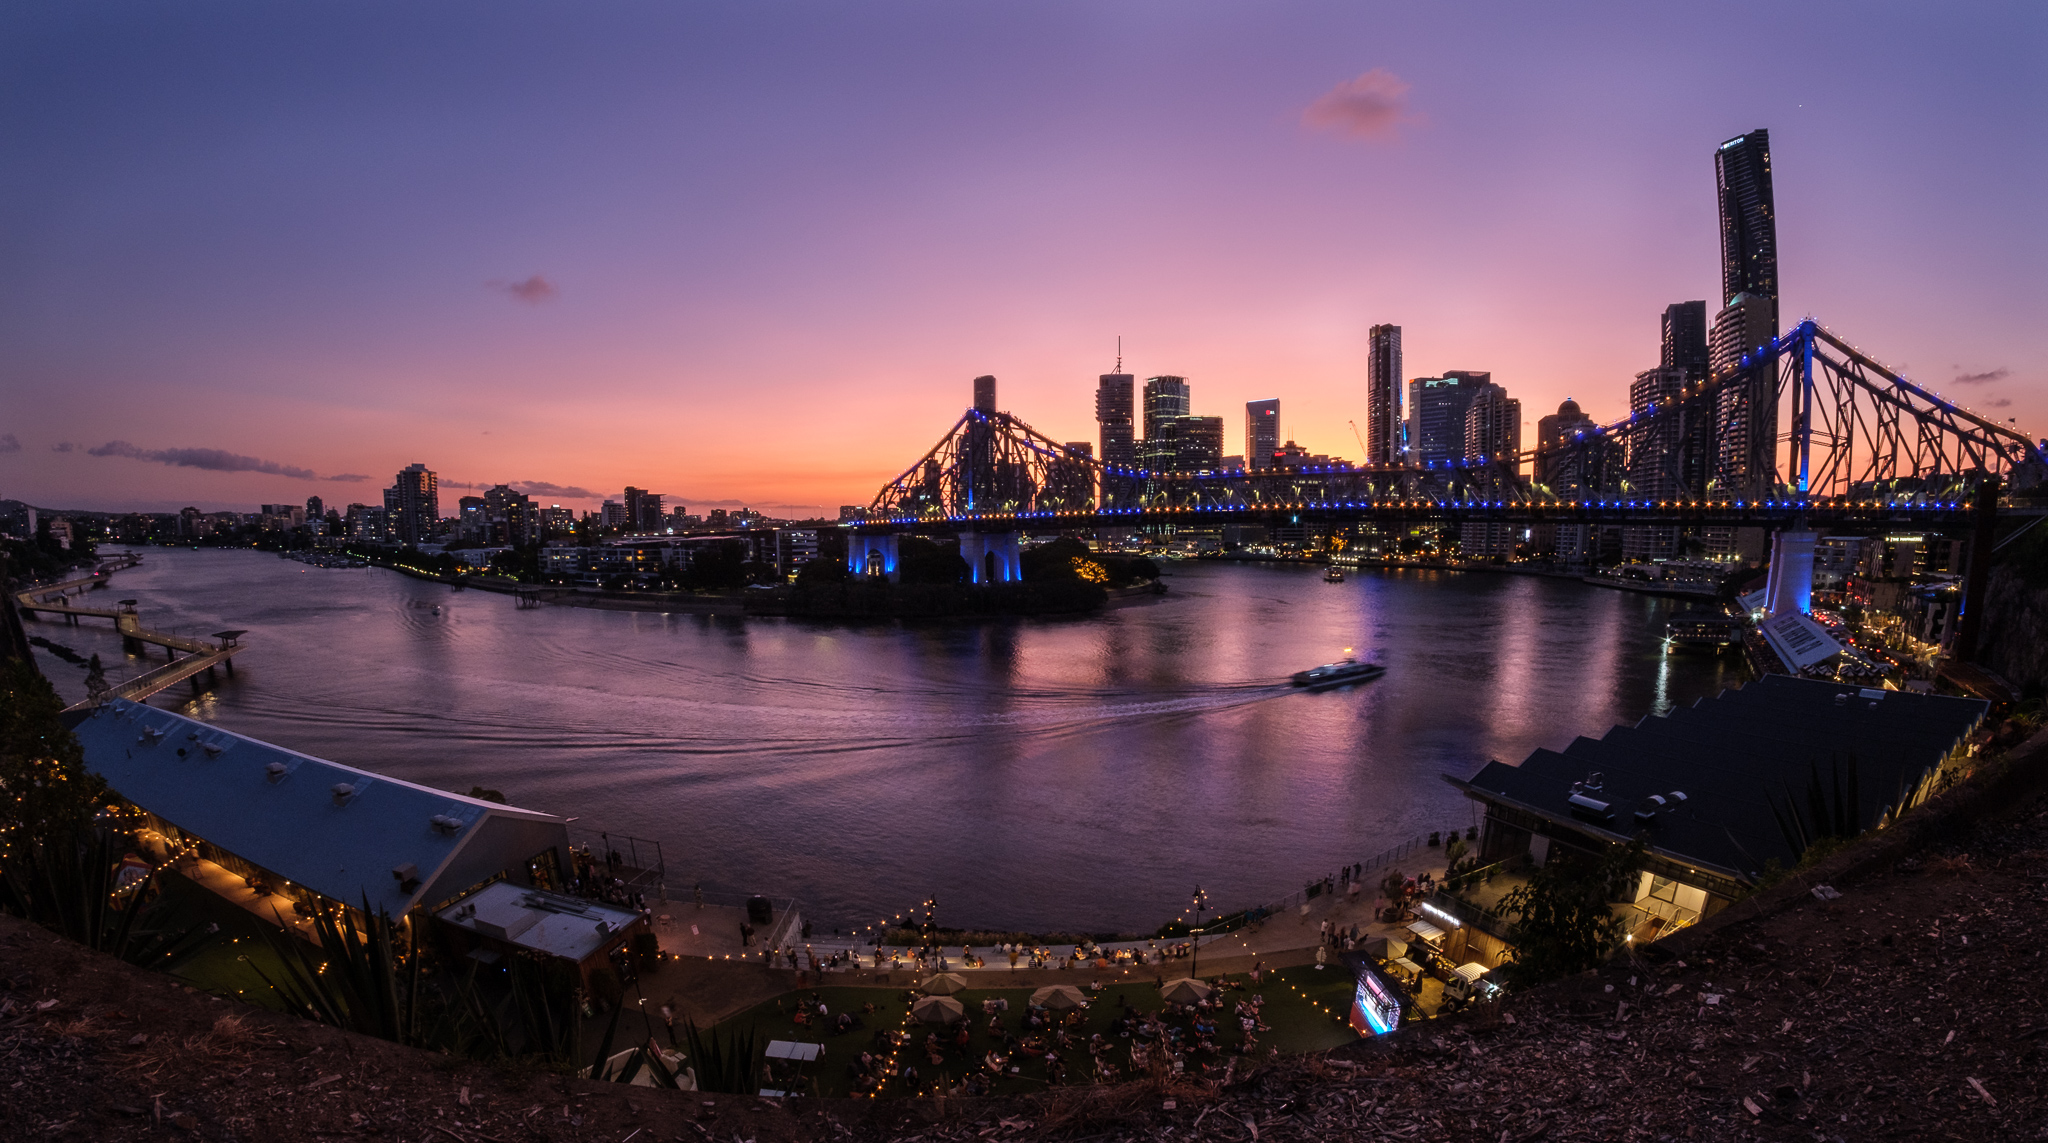 Pic of the Day – Story Bridge at Dusk